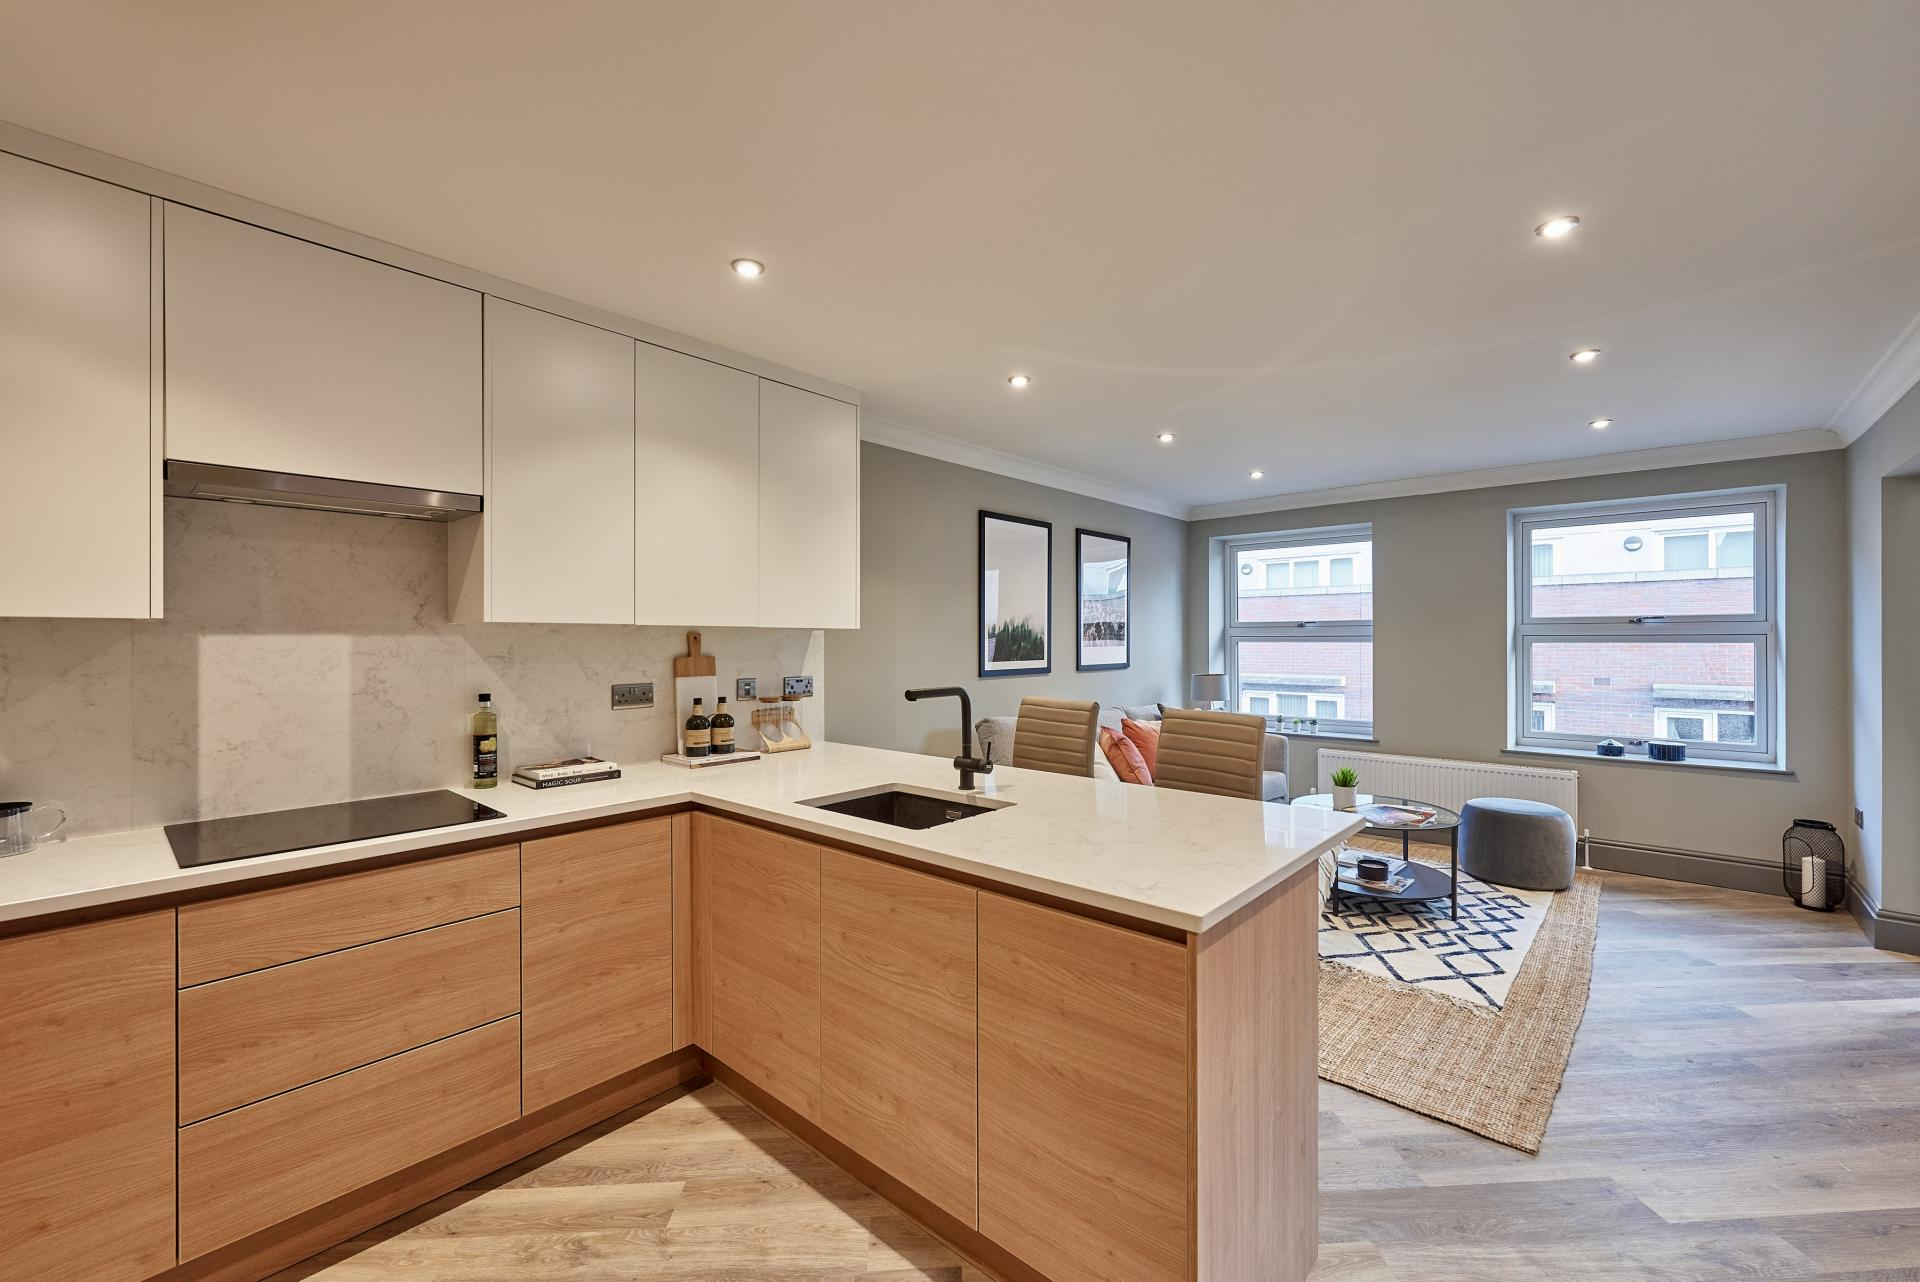 Worktop at The St Paul's Residence, Jewellery Quarter, Birmingham - Citybase Apartments